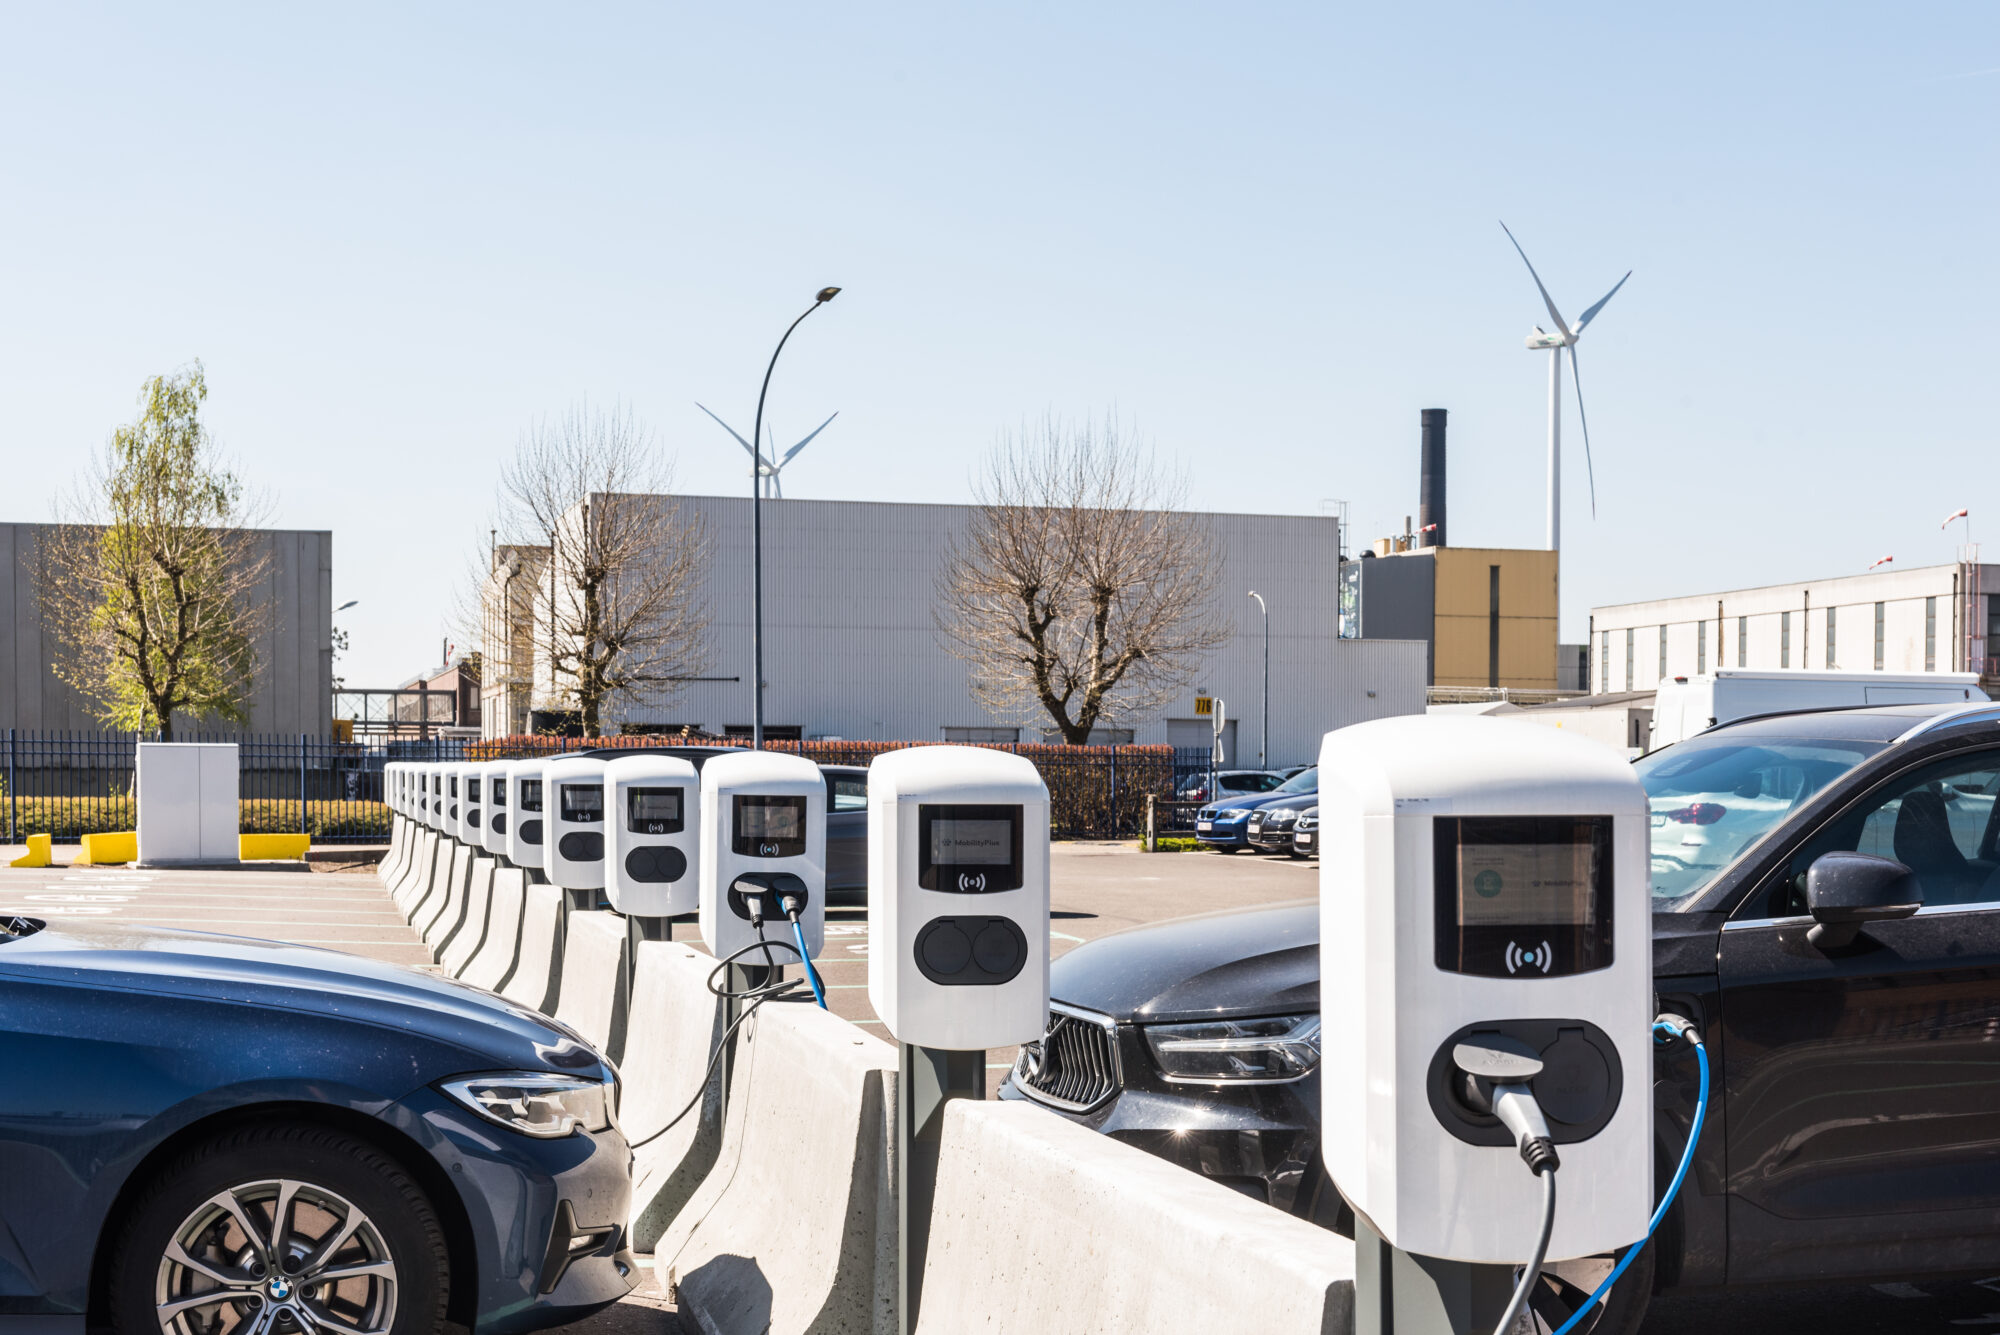 Umicore to use electric vehicles in Belgium: phased and budget-neutral